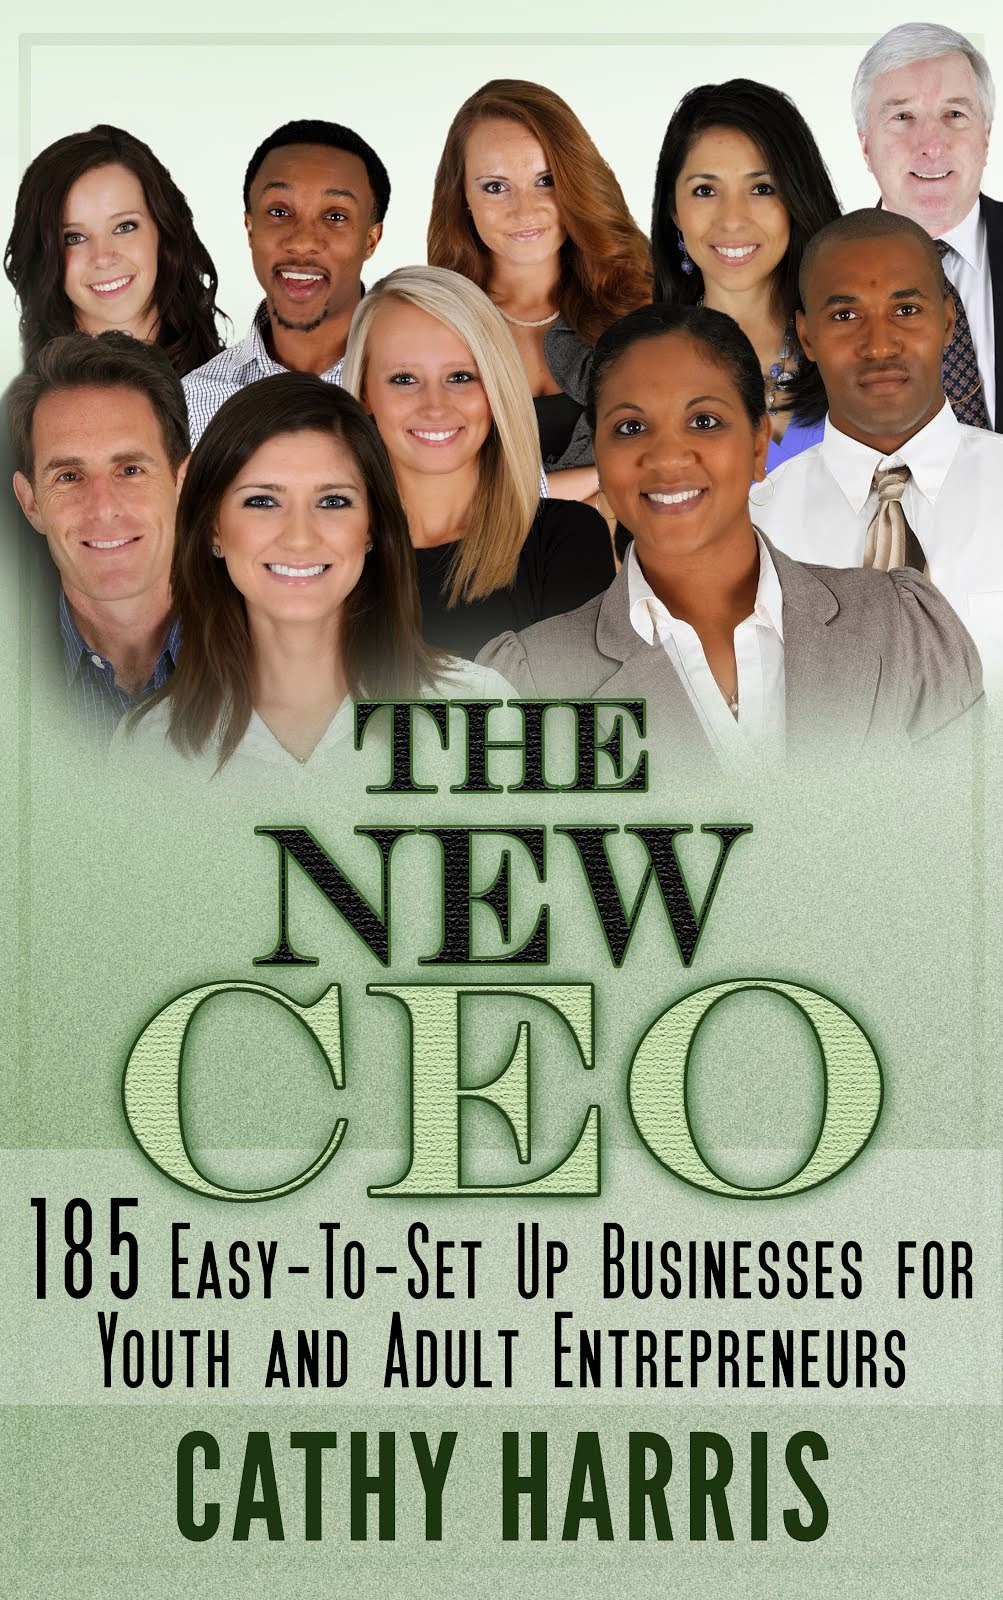 Cathy Harris New Business Book Available Now!!!